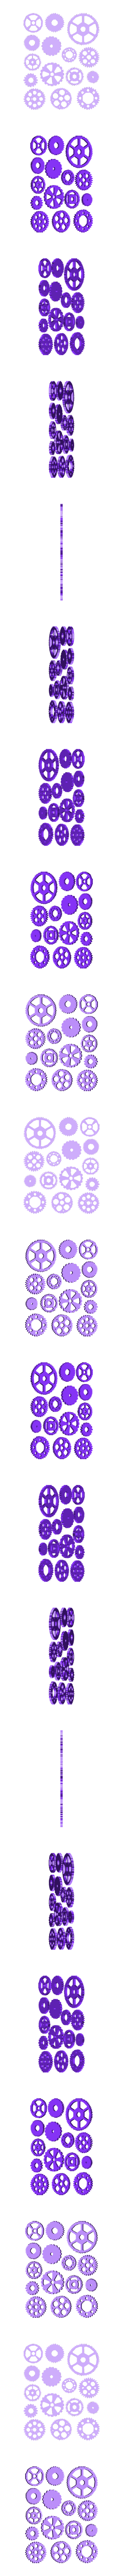 ENGRANAJES 2.stl Download STL file GEars for SteamPunk • 3D printing object, xpholx